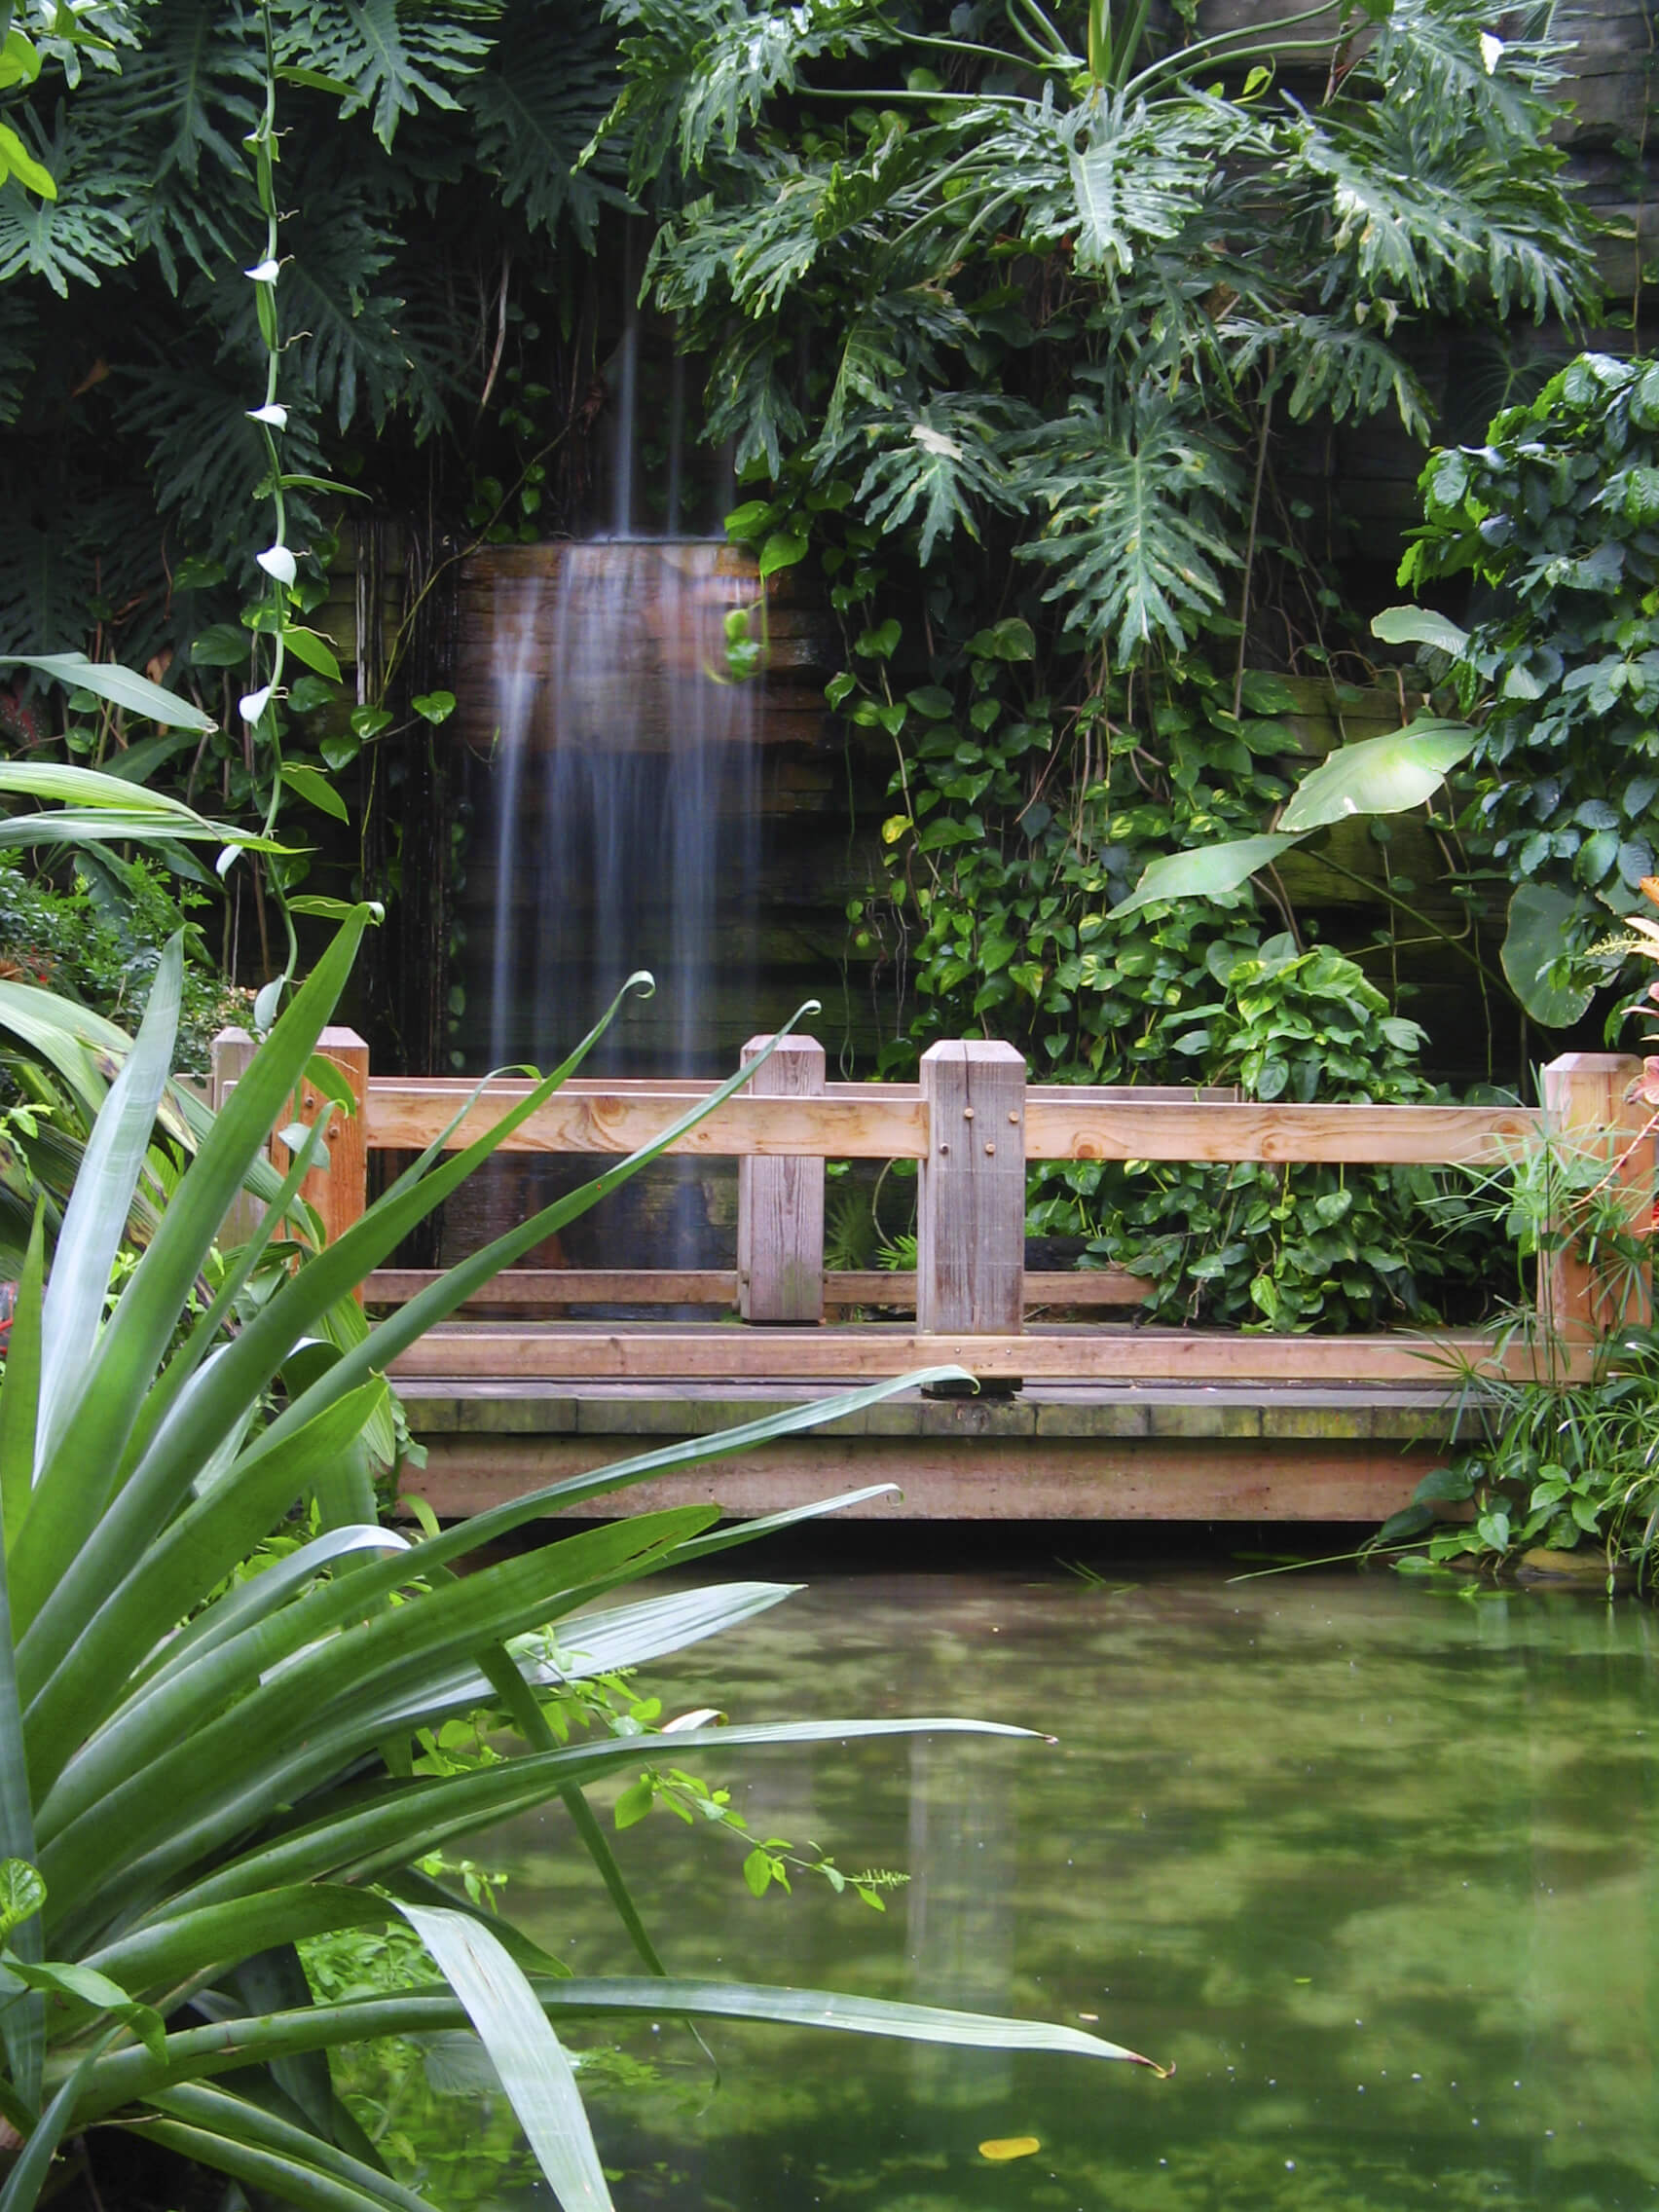 A tranquil natural wood bridge crossing an algae-filled pond with a sheer waterfall behind it. Large leafed plants and vines trail down from the rocks.